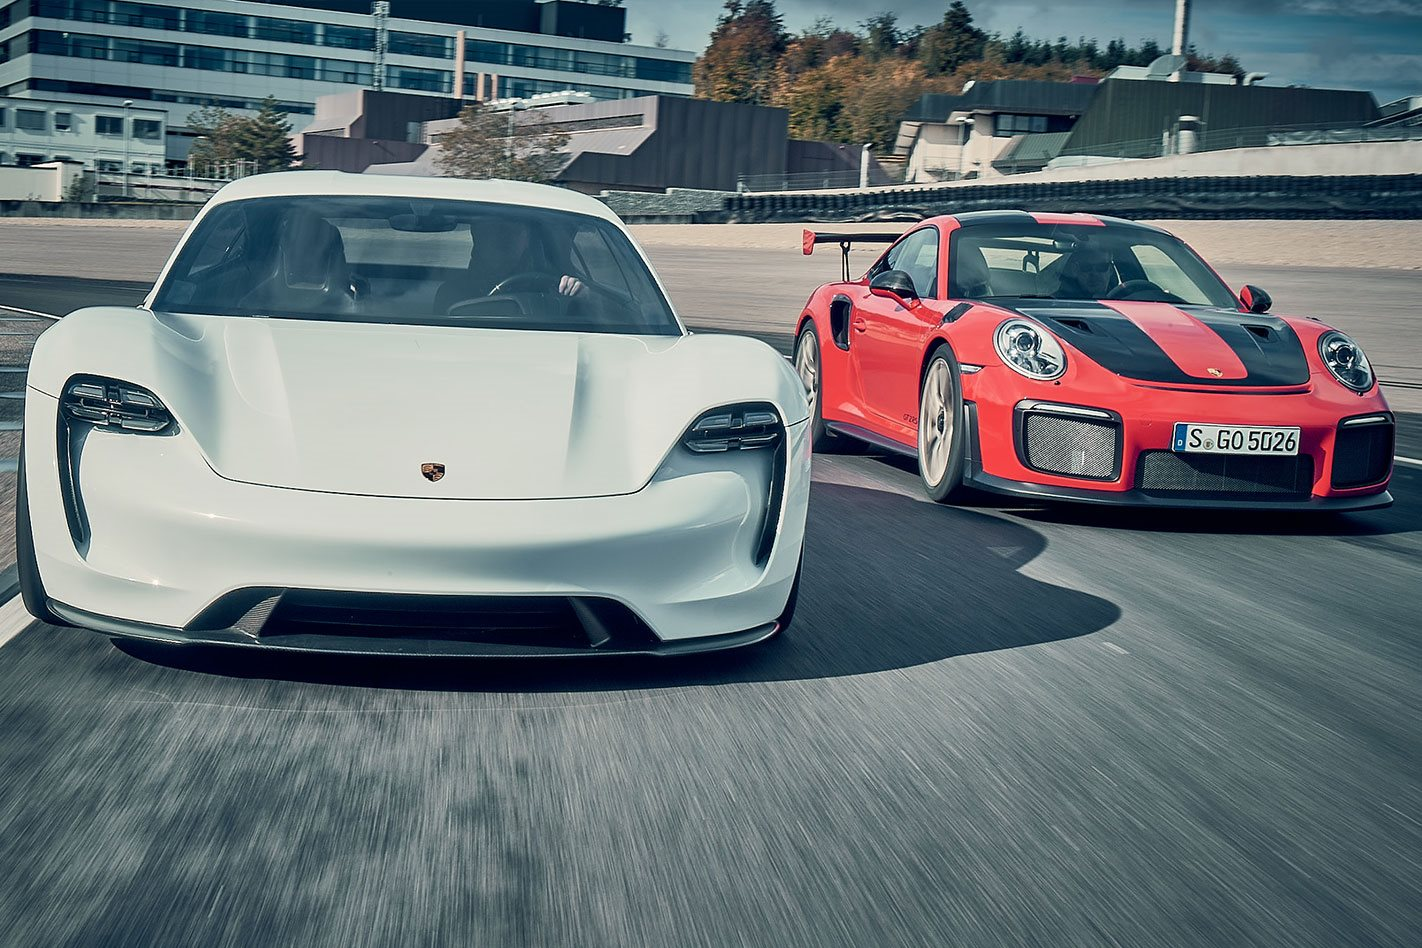 2018-Porsche-911-GT2-RS-vs-Porsche-Mission-E-Concept-comparison-drive